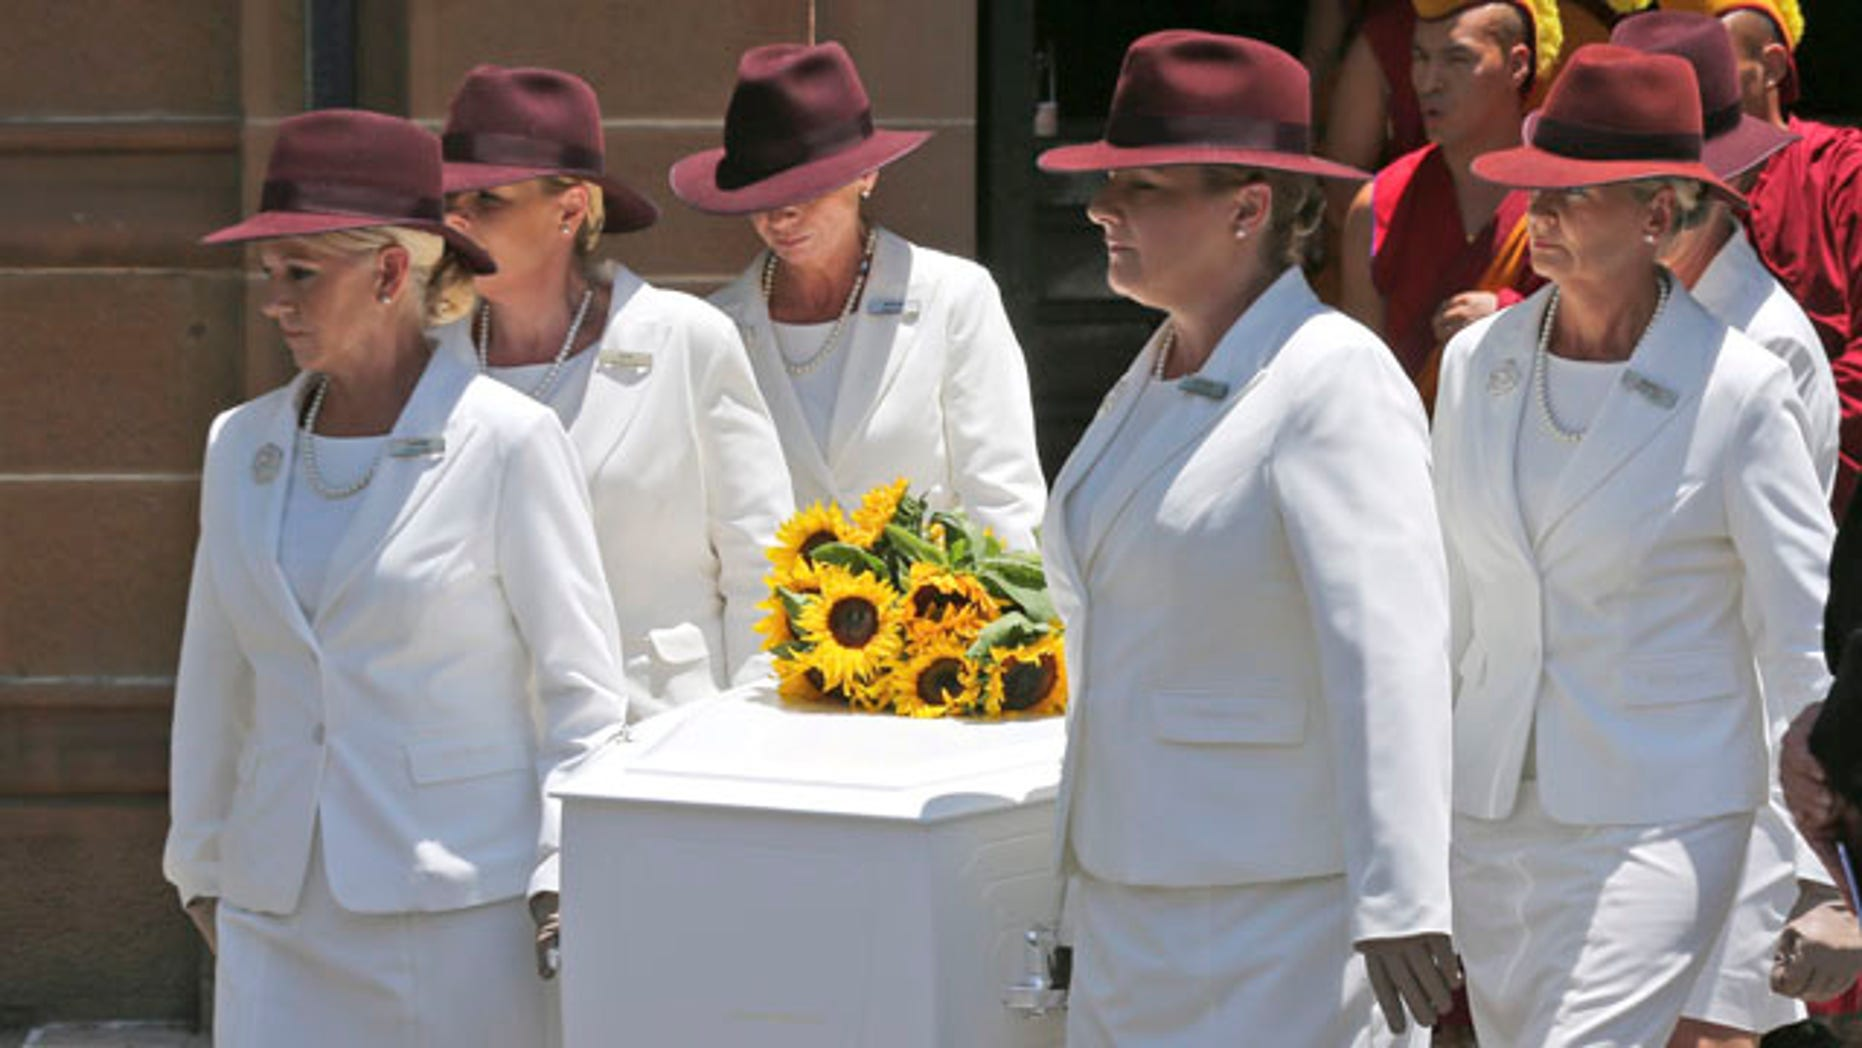 Dec. 23, 2014: White Lady funeral directors carry the coffin of Tori Johnson during a funeral service in Sydney, Australia. Johnson was one of three people, including the gunman, who were killed during a siege in the Lindt cafe coffee shop in Sydney last week.(AP Photo/Rob Griffith)